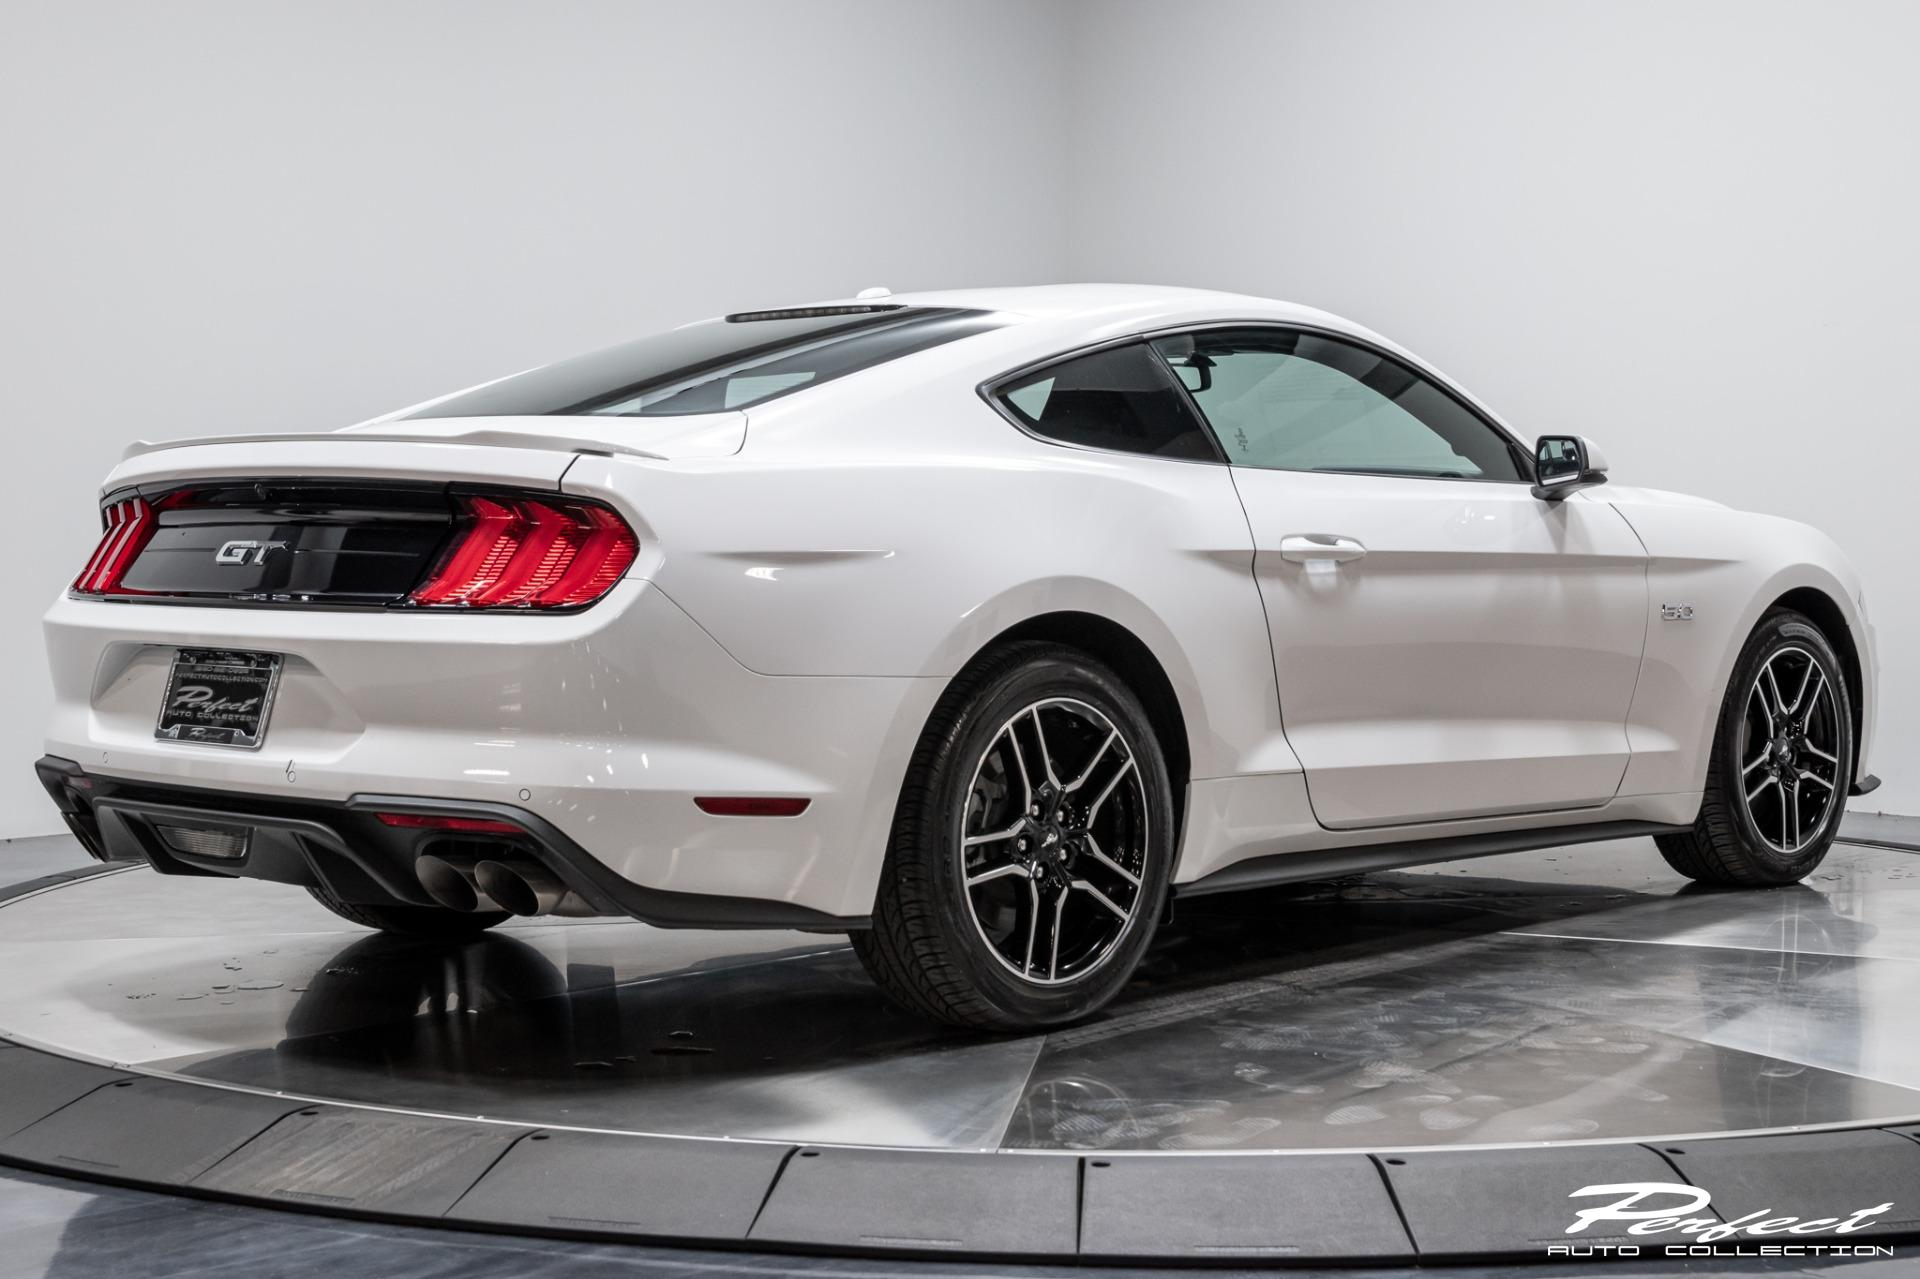 2020 Ford Mustang Suv Price